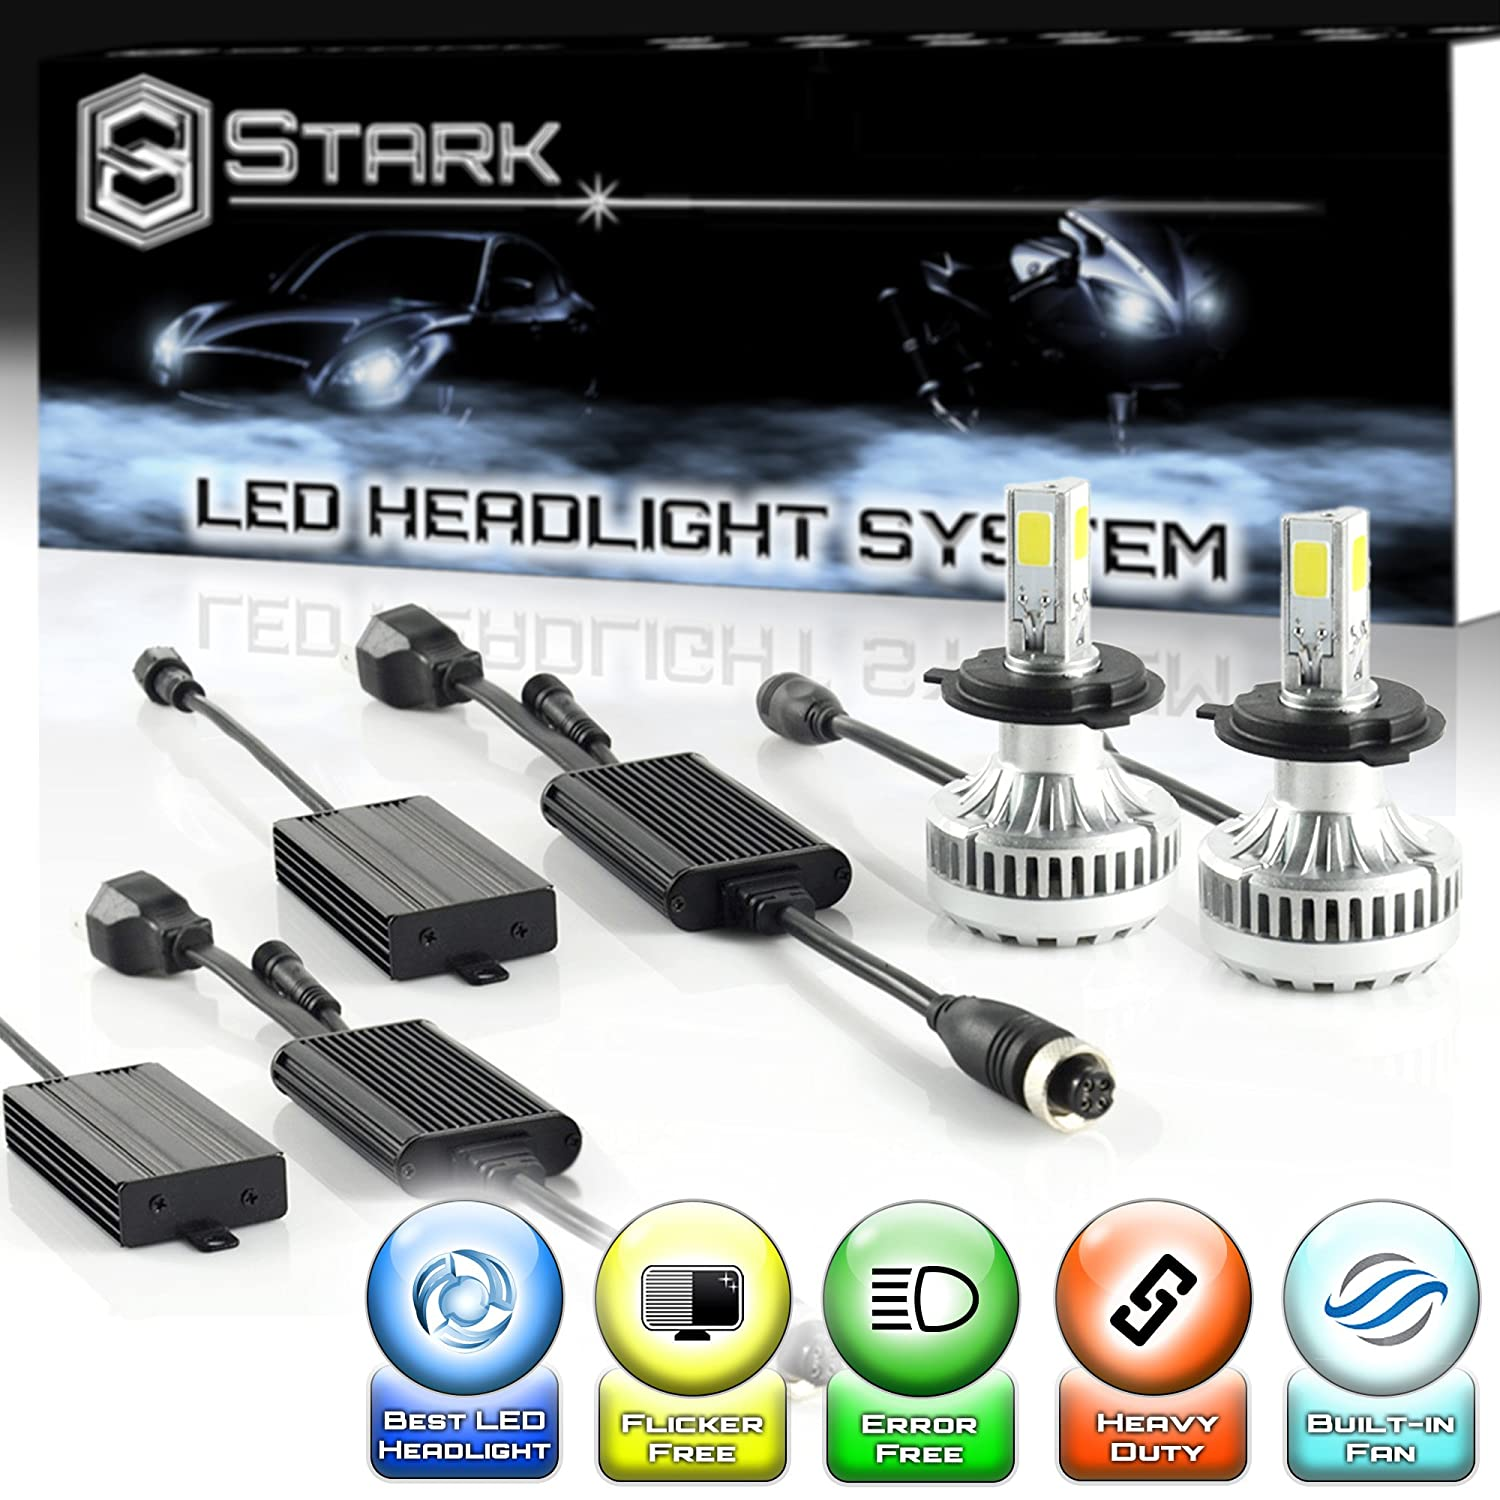 Stark 90W 9000LM LED Headlight Conversion Kit - Cool White 6000K 6K - Dual Hi/Lo Beam - H4 / HB2 / 9003 UNV inc